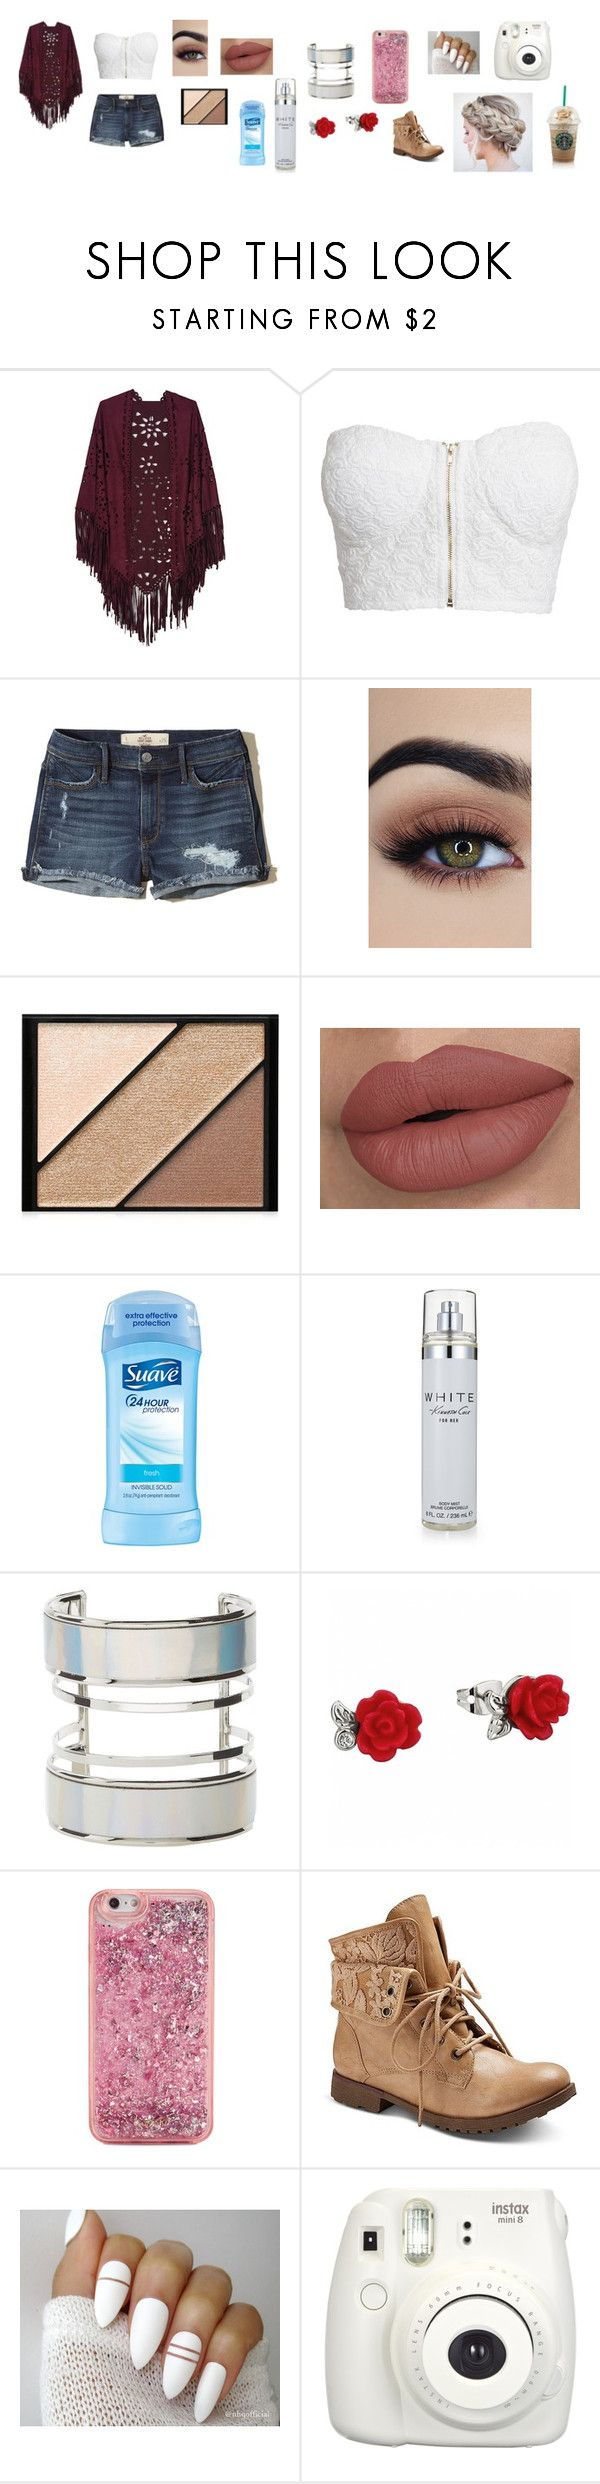 """""""Untitled #96"""" by angelicaortega-i ❤ liked on Polyvore featuring NLY Trend, Hollister Co., Elizabeth Arden, Kenneth Cole, Charlotte Russe, ban.do, Z London and Fujifilm"""